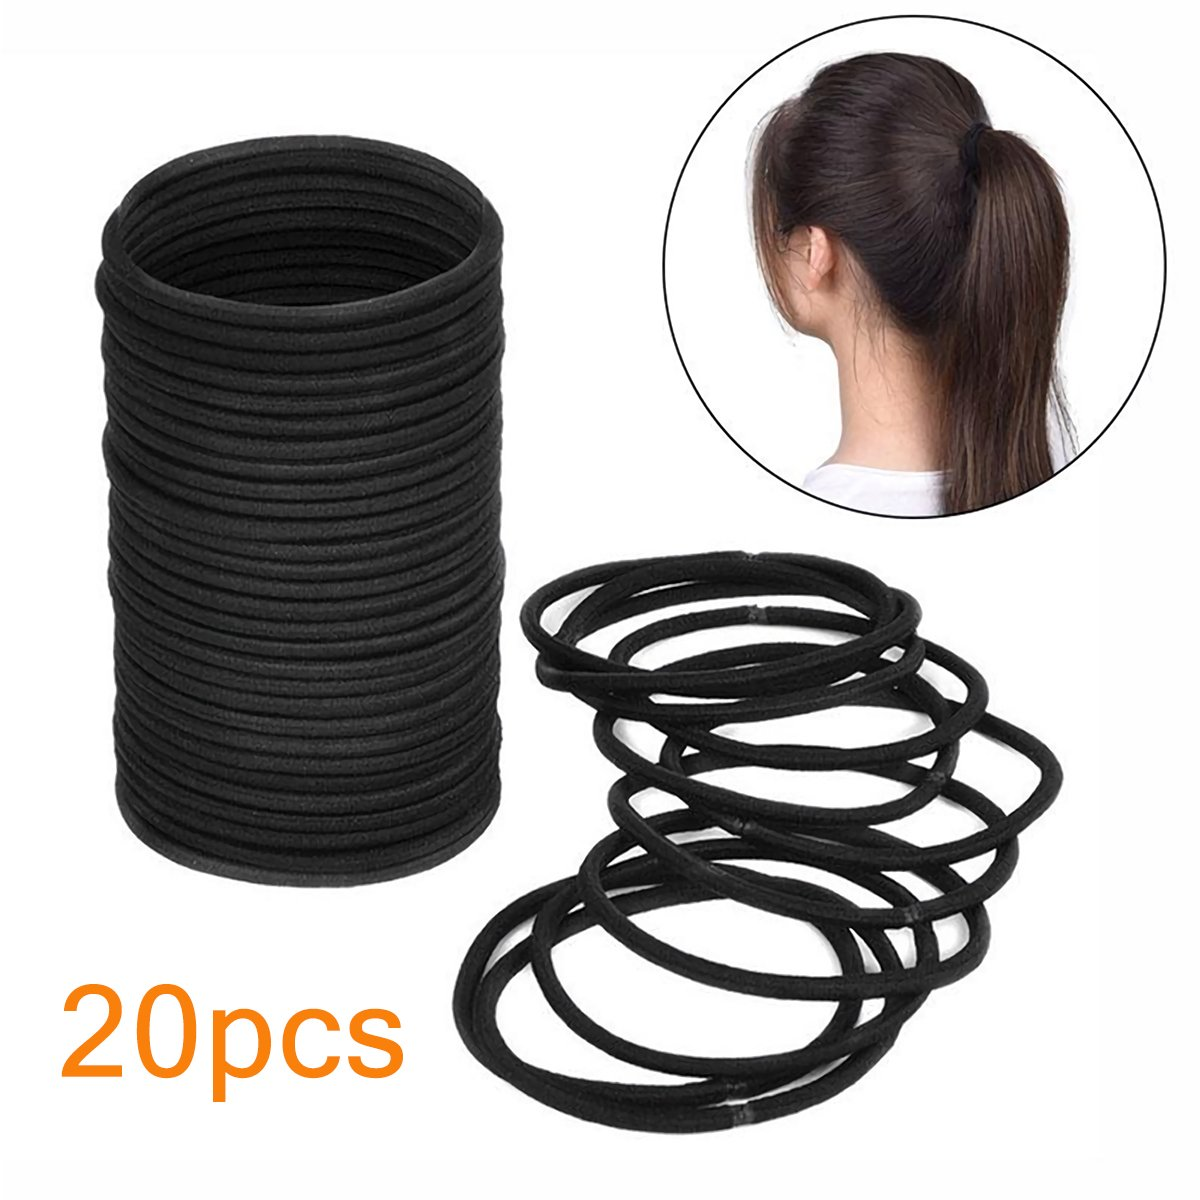 Elastic Hair Ties Ropes Seamless Solid Neural Color Women Girls Hairband Women Hair Accessories (20pcs/black) Suces